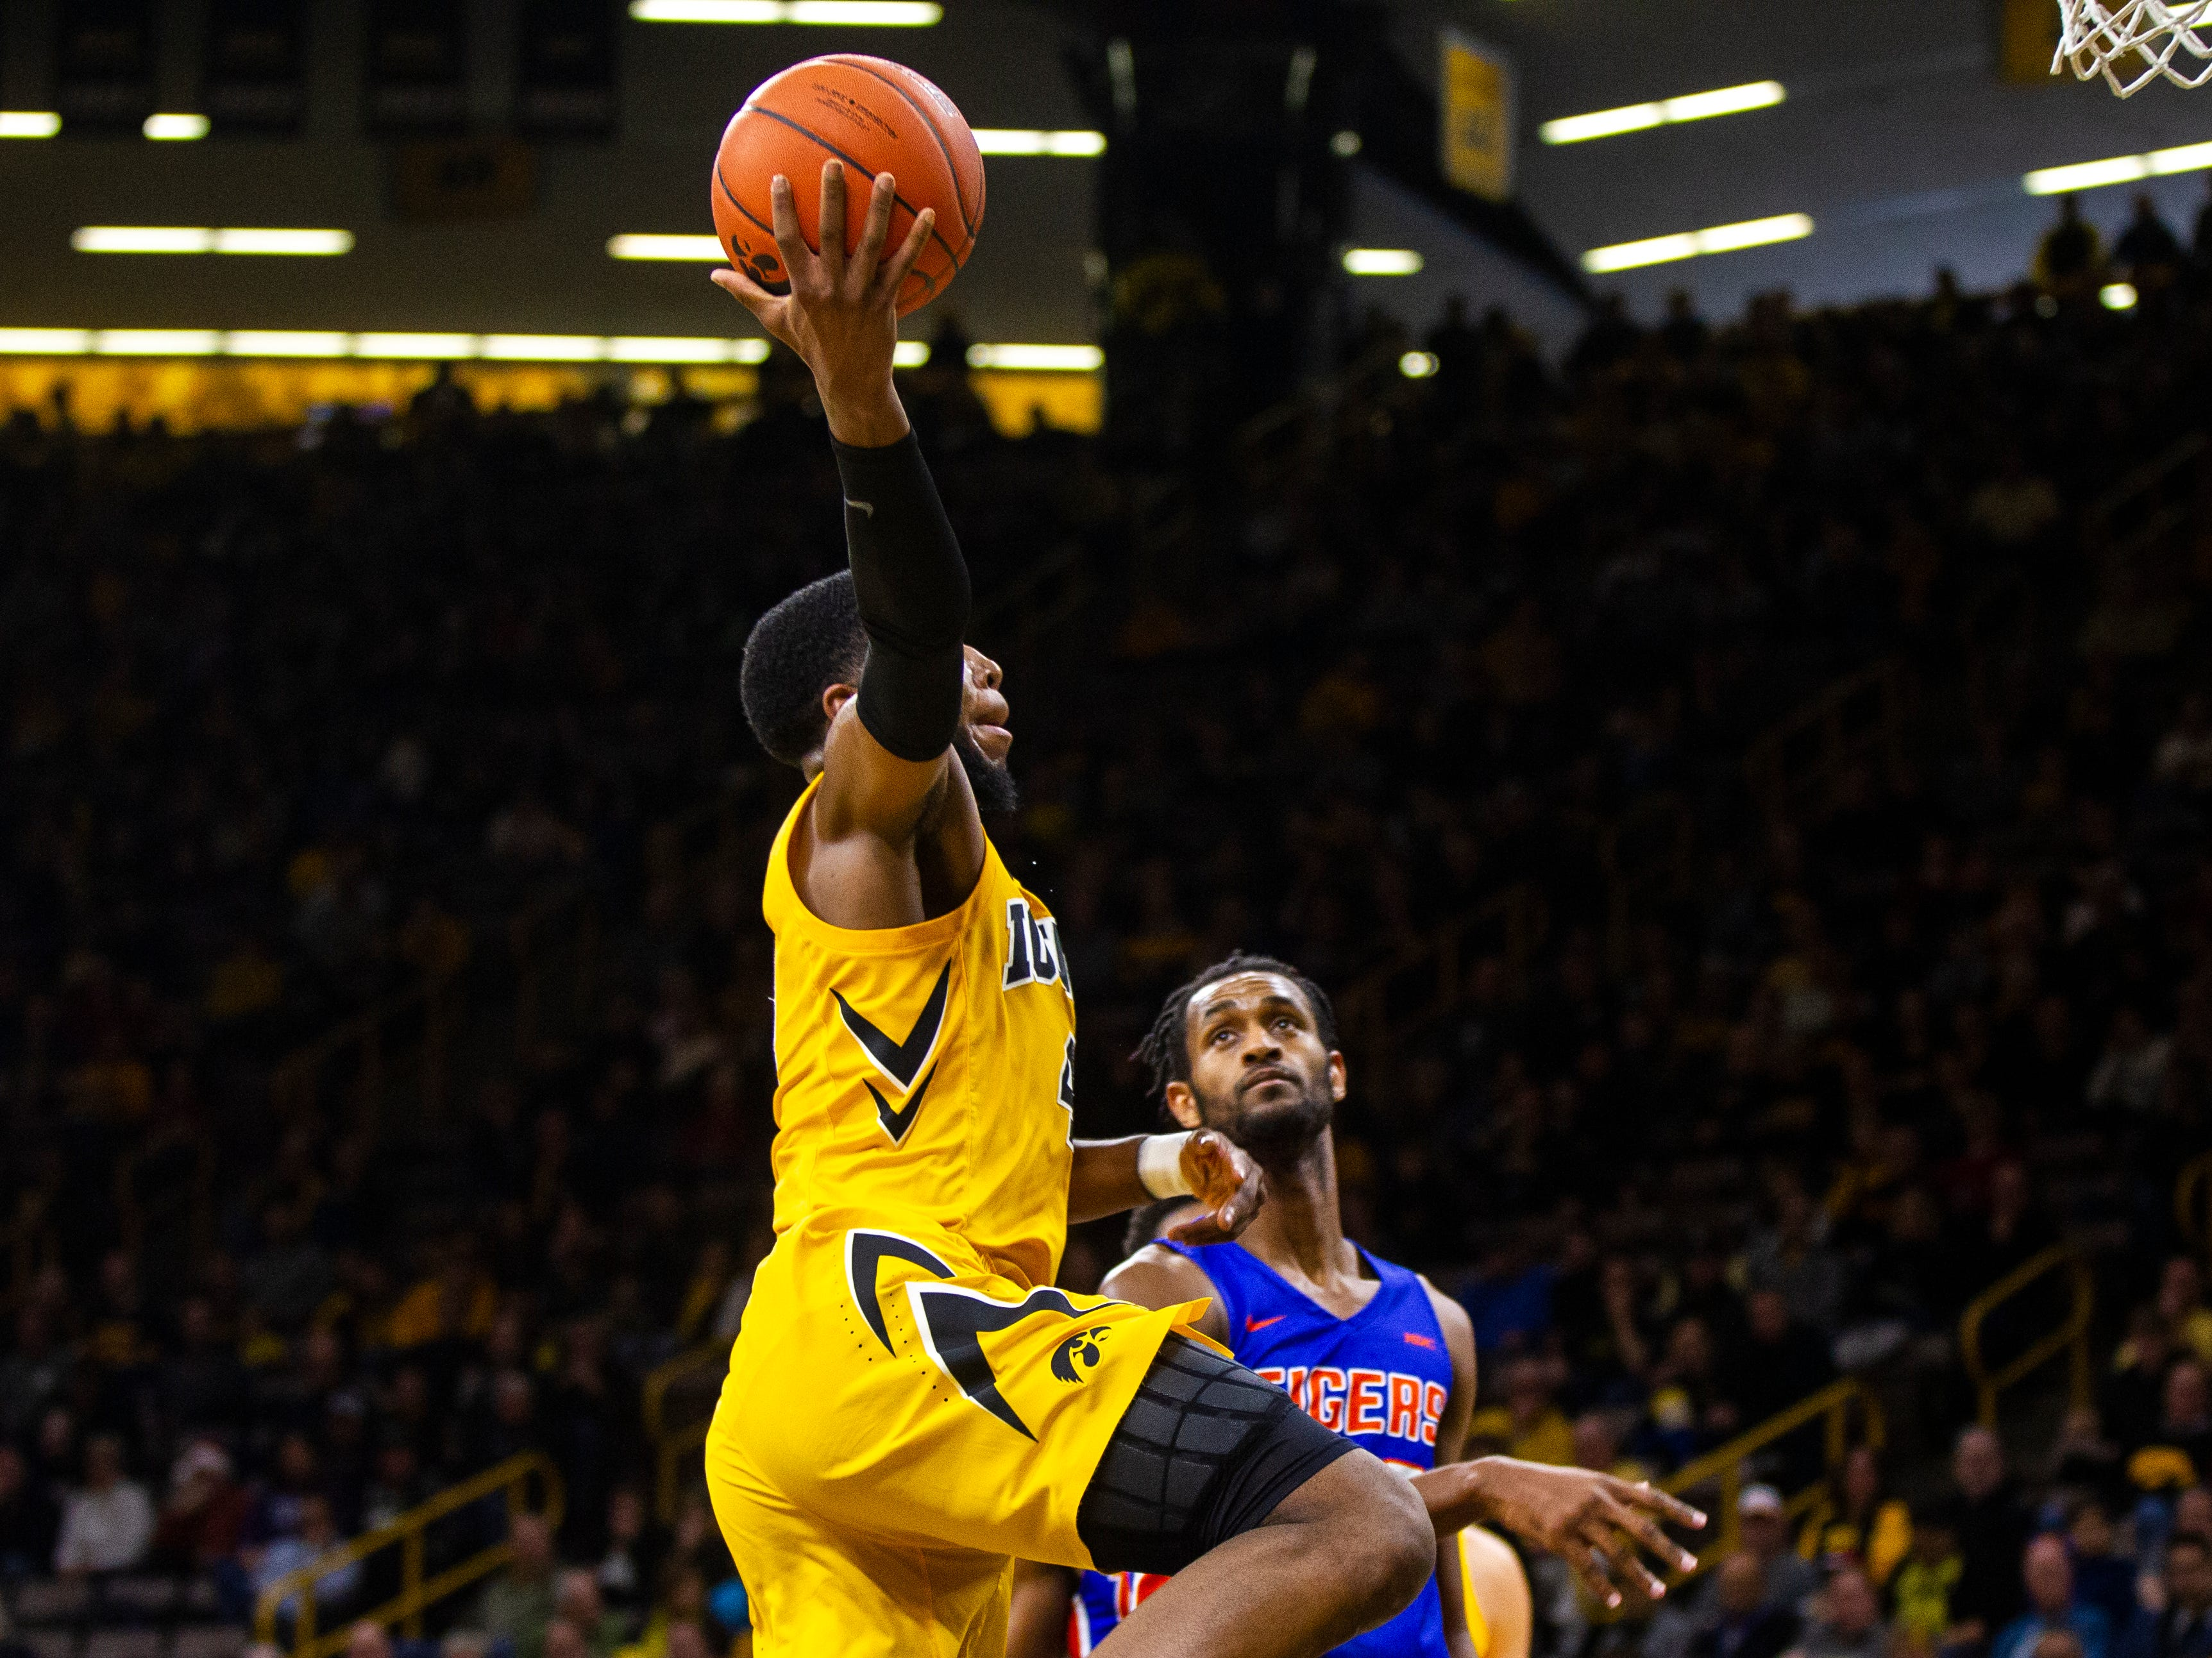 Iowa guard Isaiah Moss (4) drives to the hoop for a dunk during a NCAA men's basketball game on Saturday, Dec. 22, 2018, at Carver-Hawkeye Arena in Iowa City.